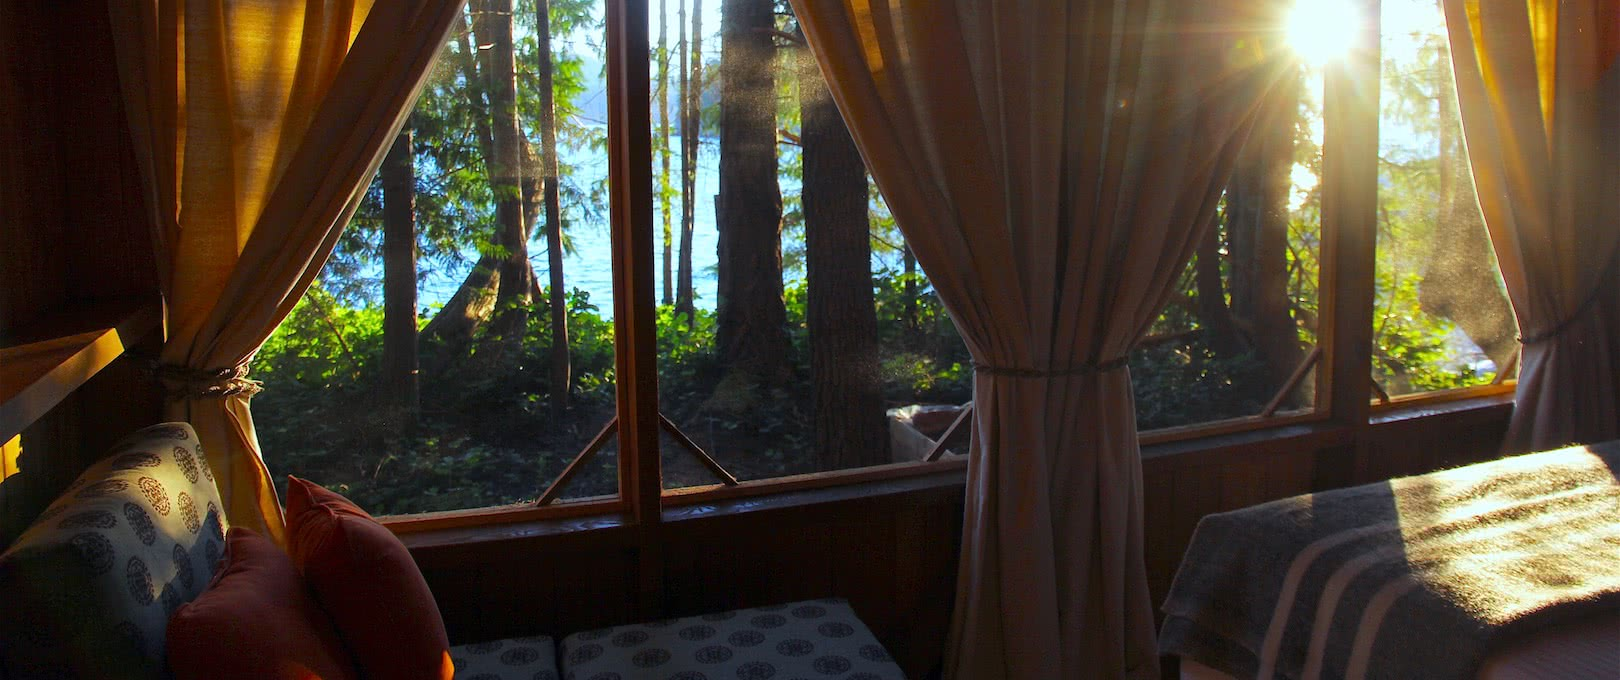 The Morning sun filtering through the trees and into one of our cabana eco resort accommodation